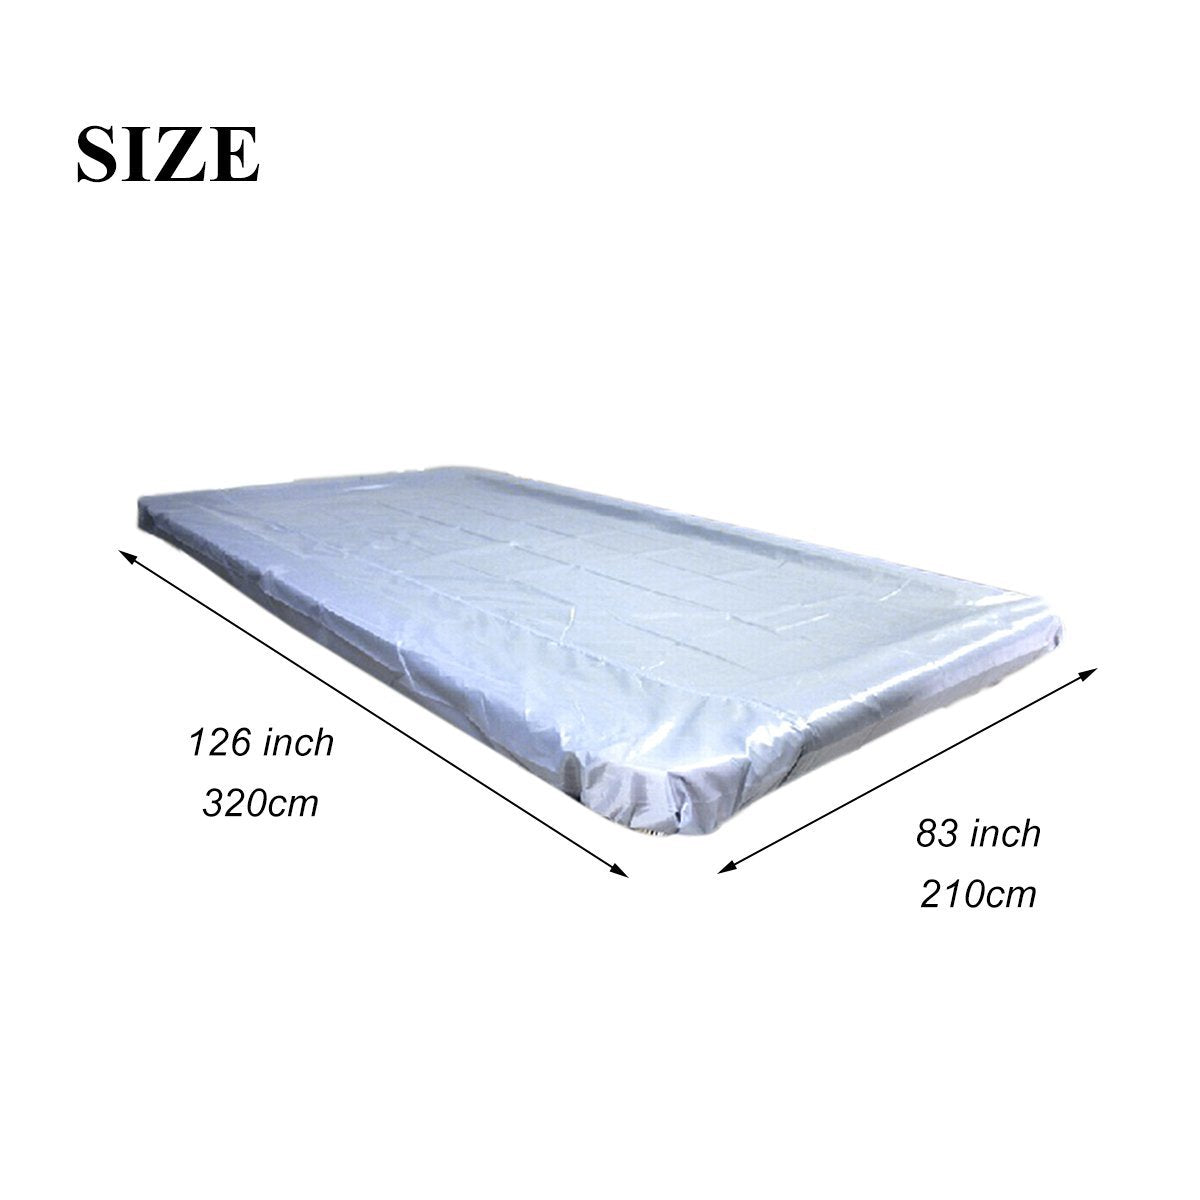 NKTM Billiard Table Cover Pool Table Cover Waterproof PVC Cover For 9 Foot Pool  Table, Silver